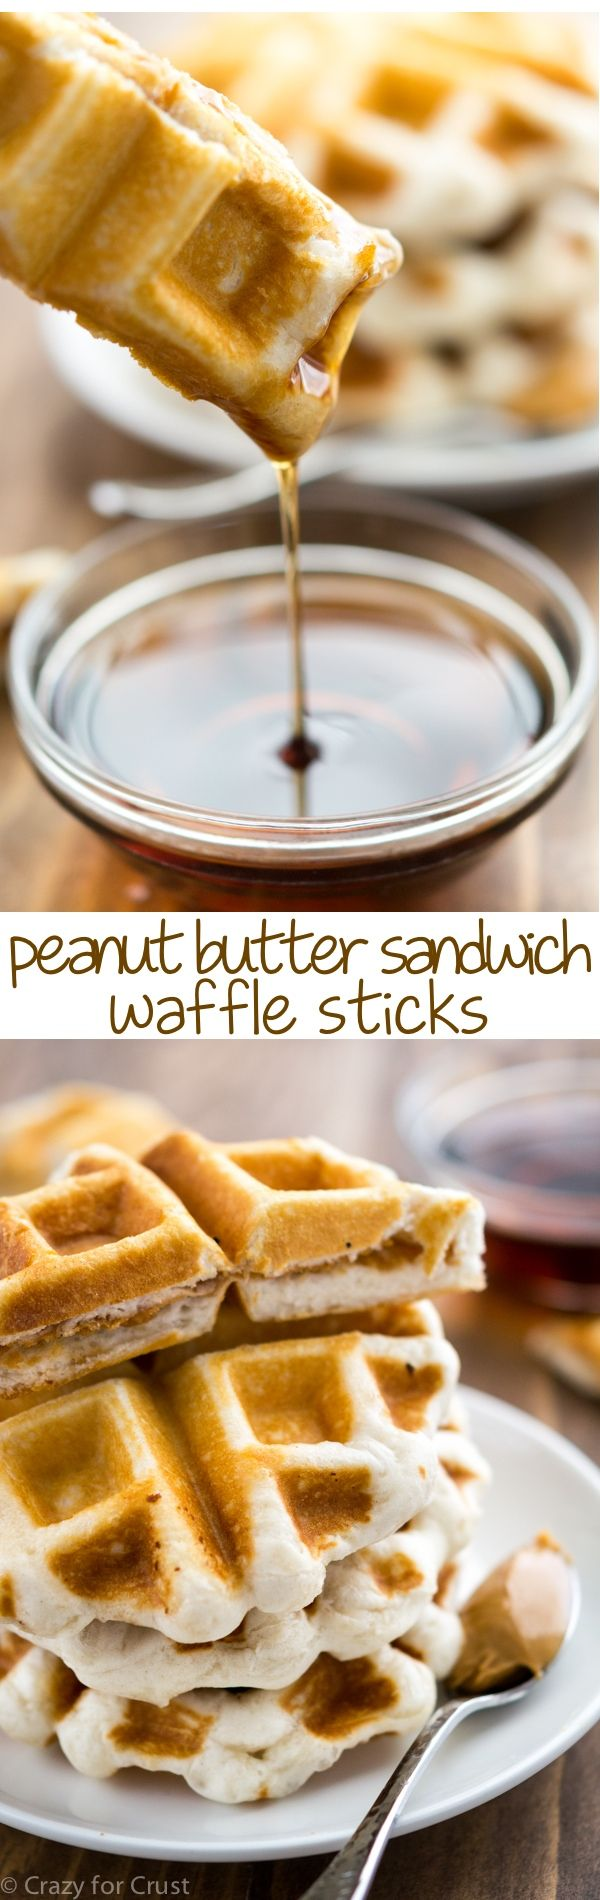 These Peanut Butter Sandwich Waffle Sticks are the perfect easy and fast breakfast with only 4 ingredients!